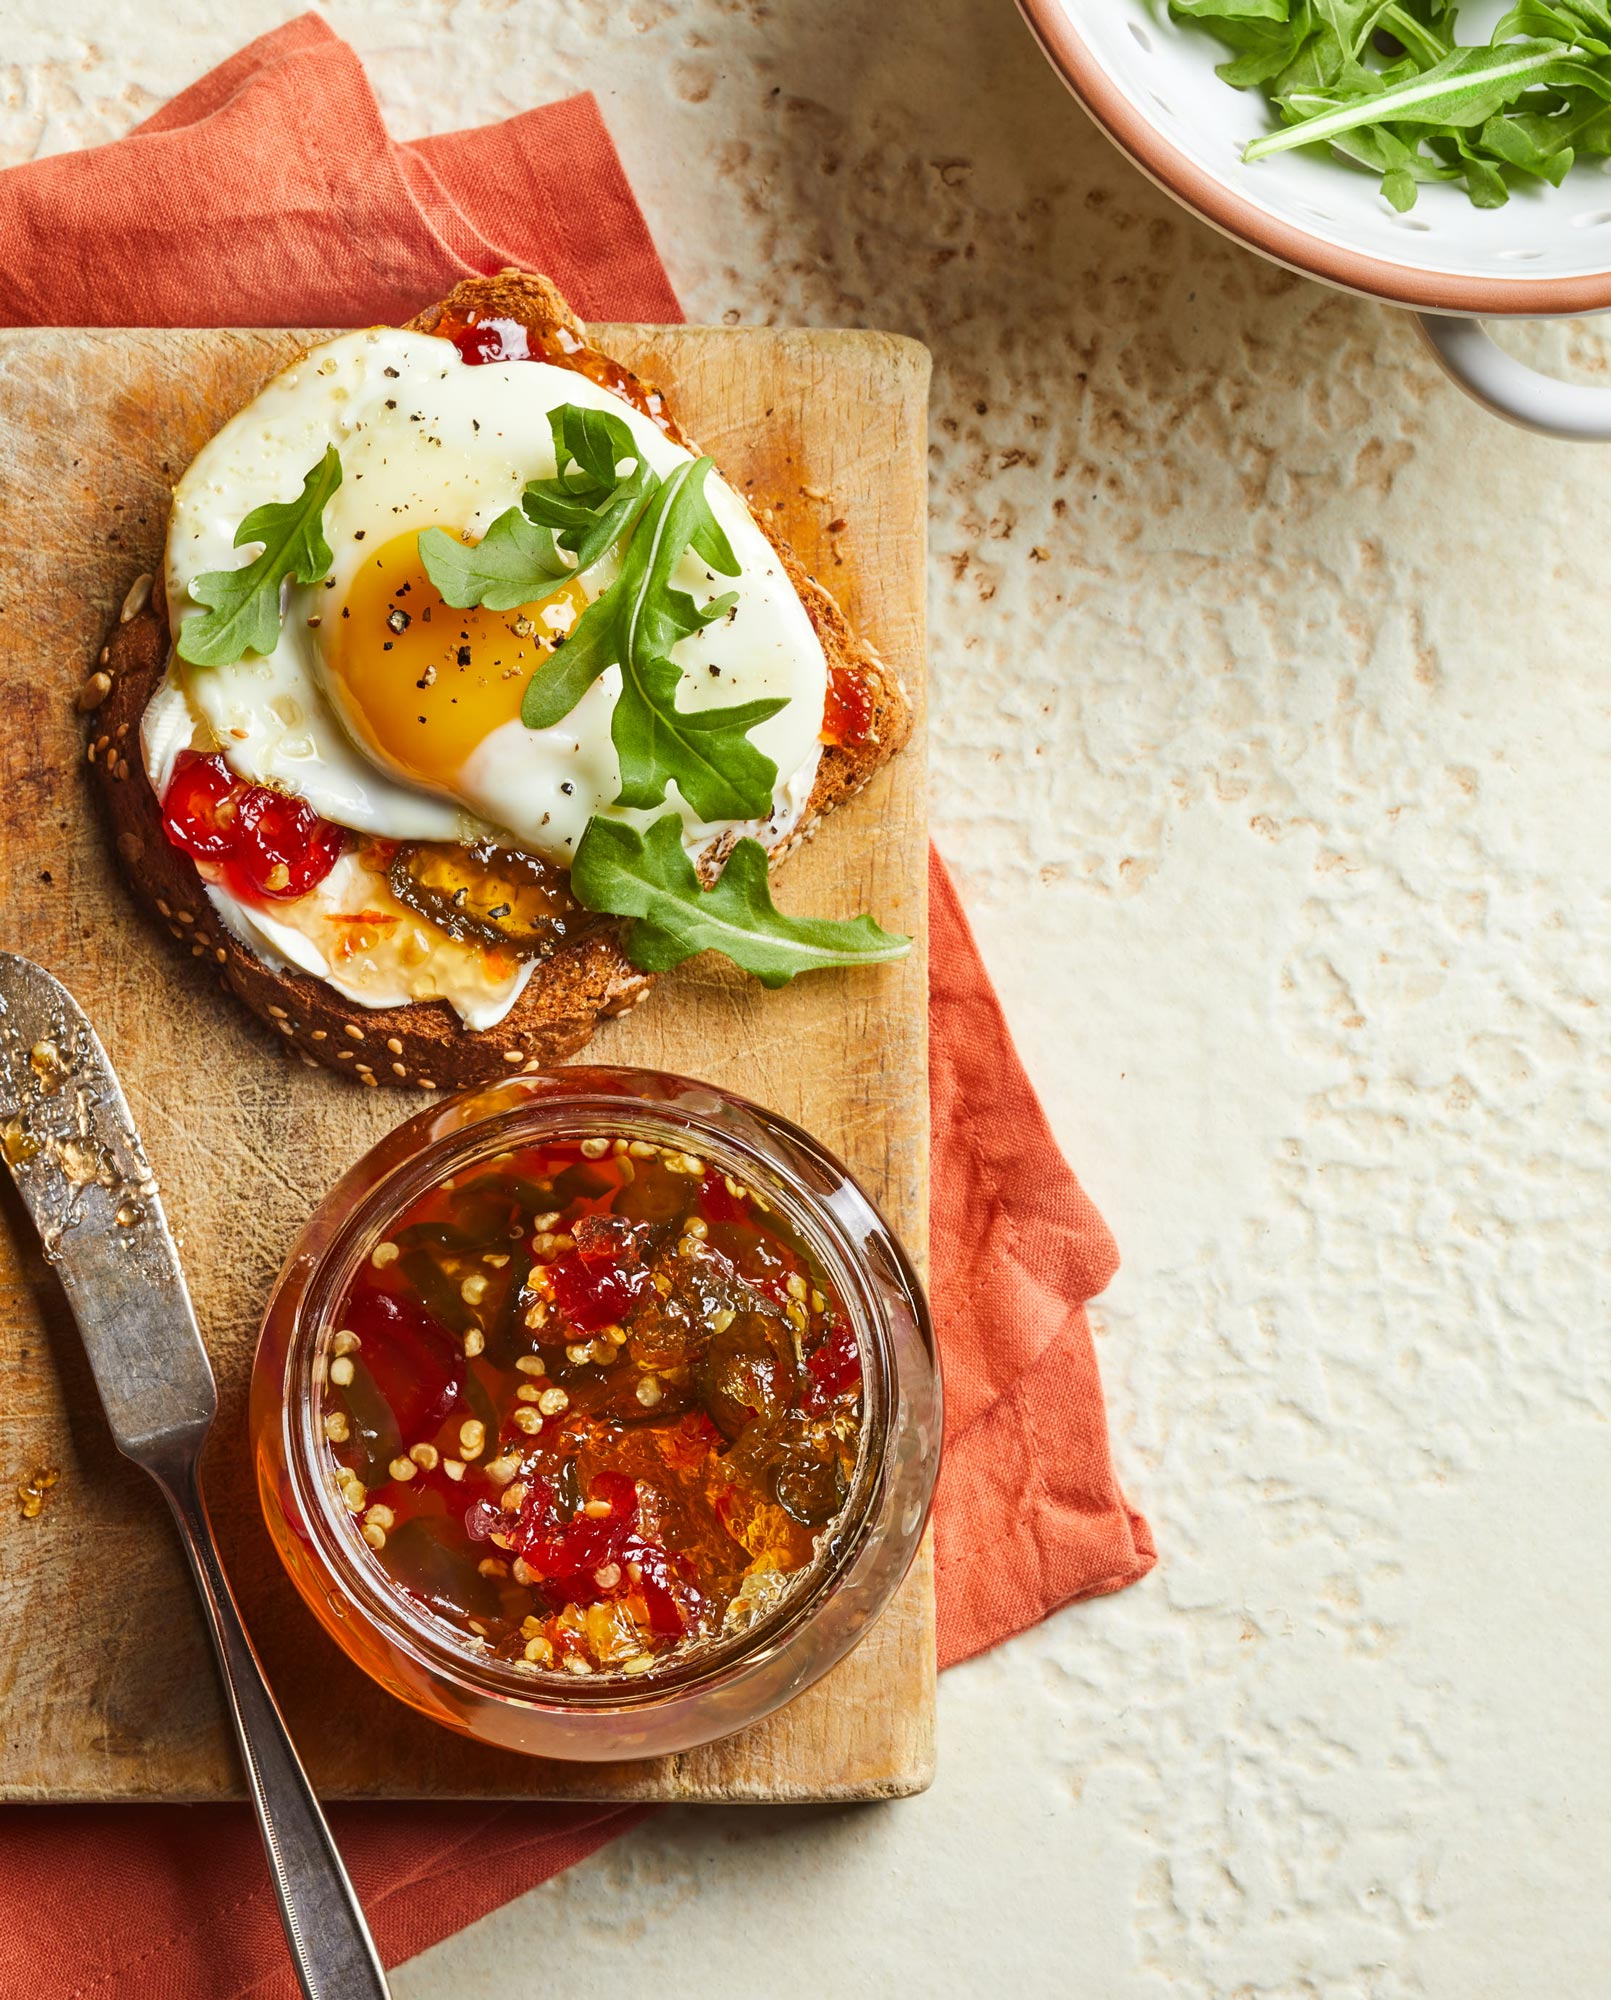 Egg sandwich with pepper jelly